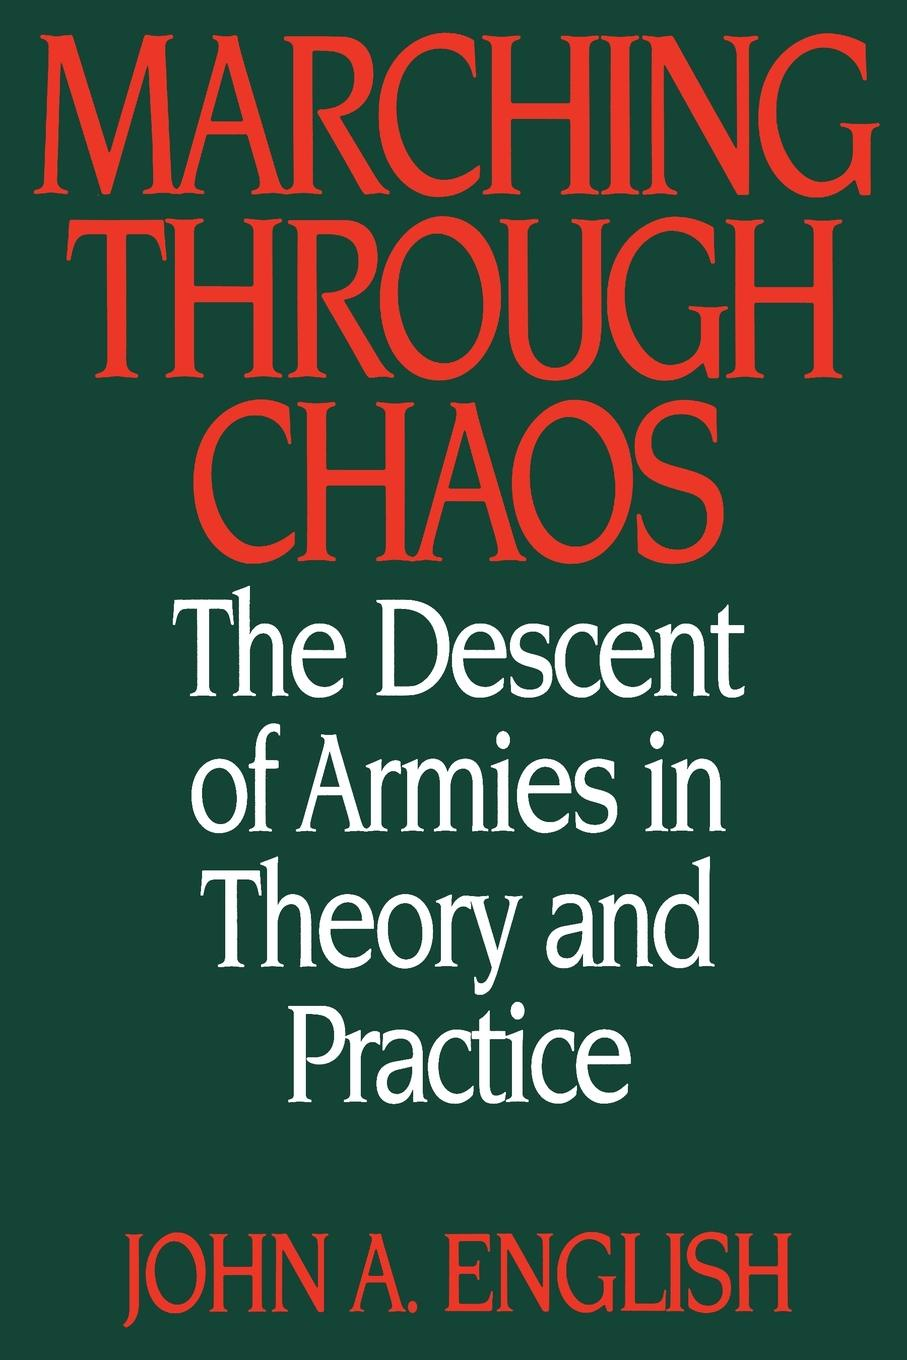 John A. English Marching Through Chaos. The Descent of Armies in Theory and Practice on the order of chaos social anthropology and the science of chaos